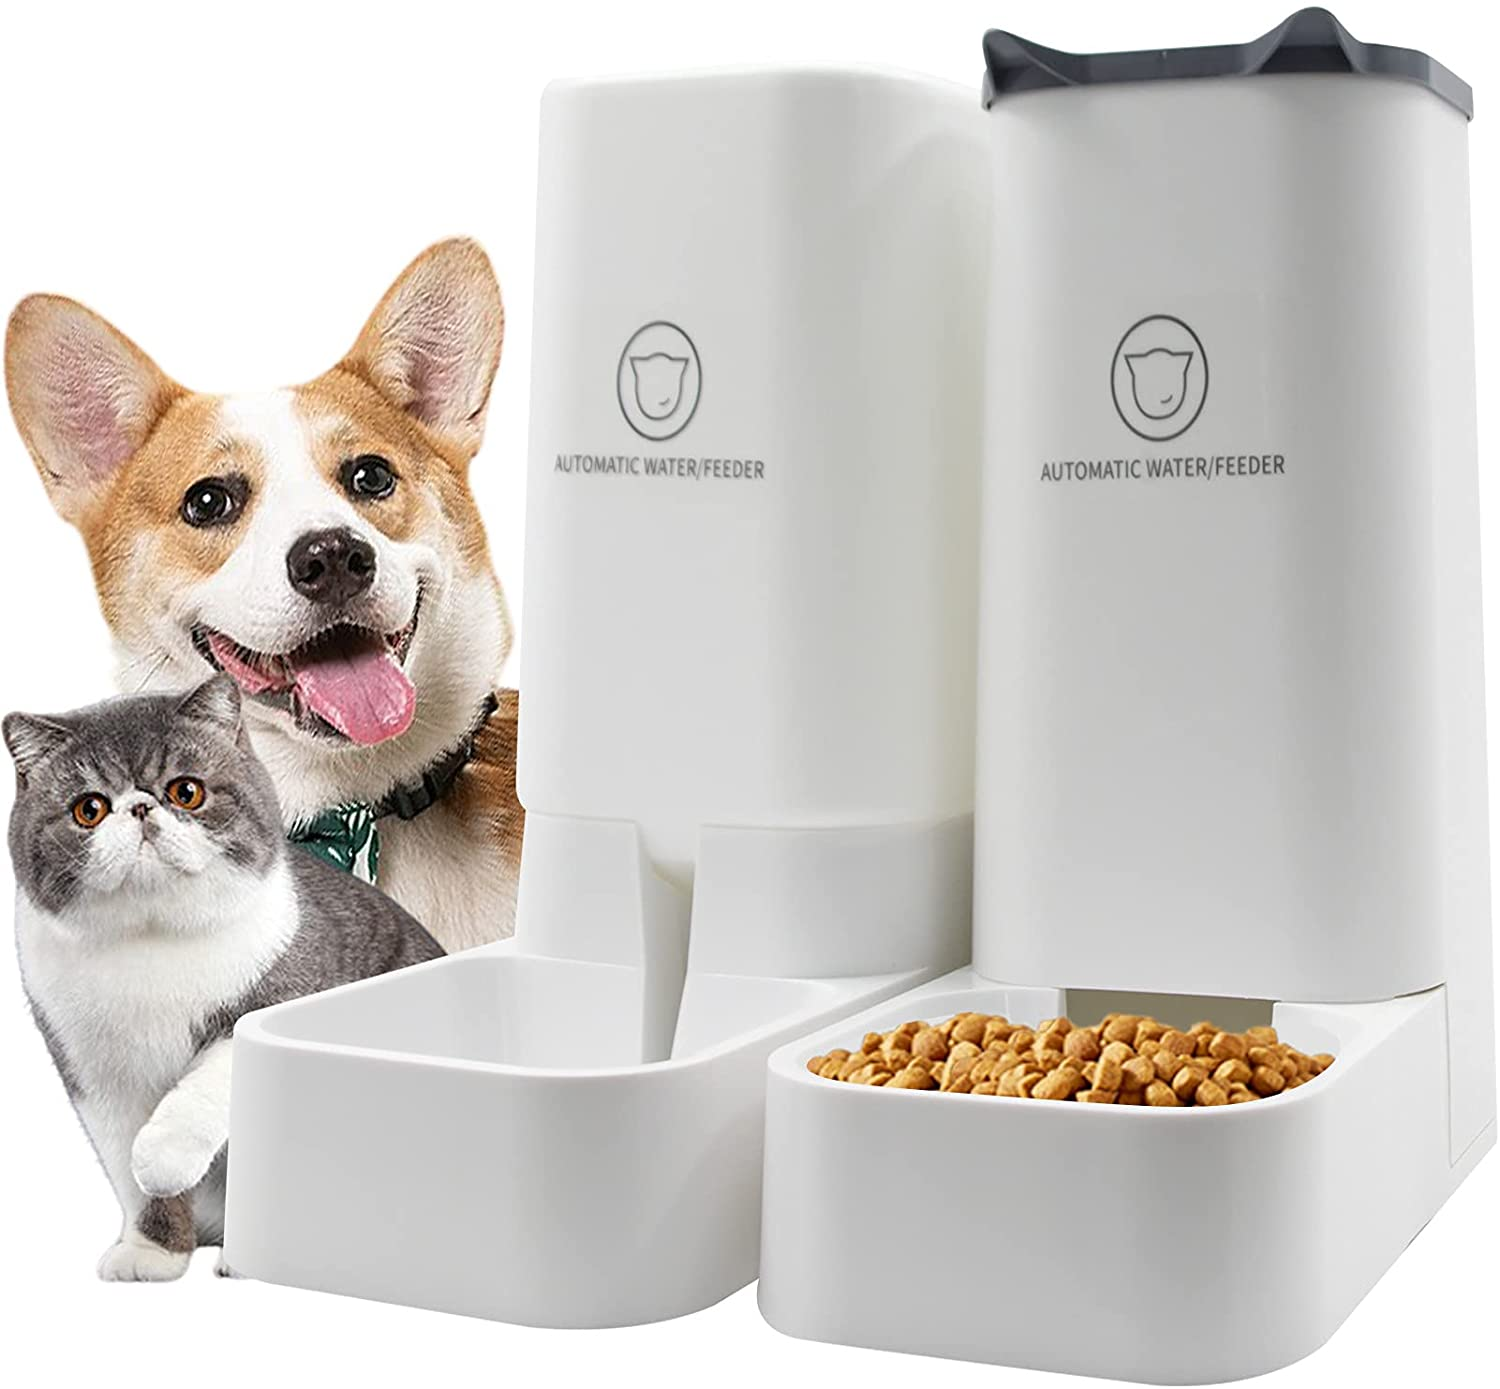 Speusazz Automatic Cat Feeder- Automatic Pet Fooder and Water Dispenser Gravity Feeder- Pet Food Feeder and Water Feeder Set - Dog Automatic Feeders Cat Water Dispenser, for Cats & Small, Medium Dogs